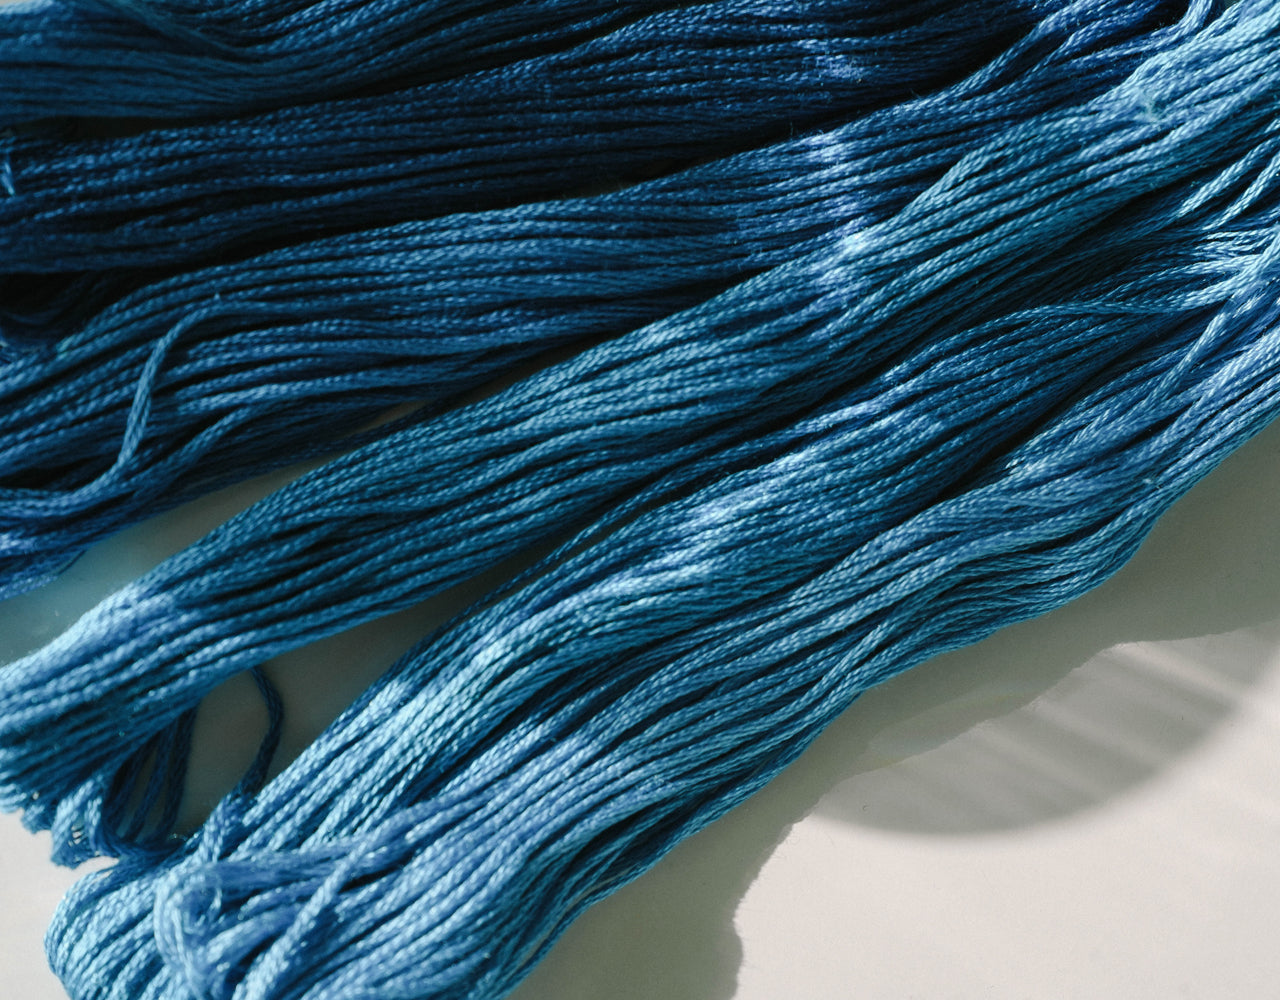 Close-up of bunches of indigo-colored cotton thread with spots of light shining on it